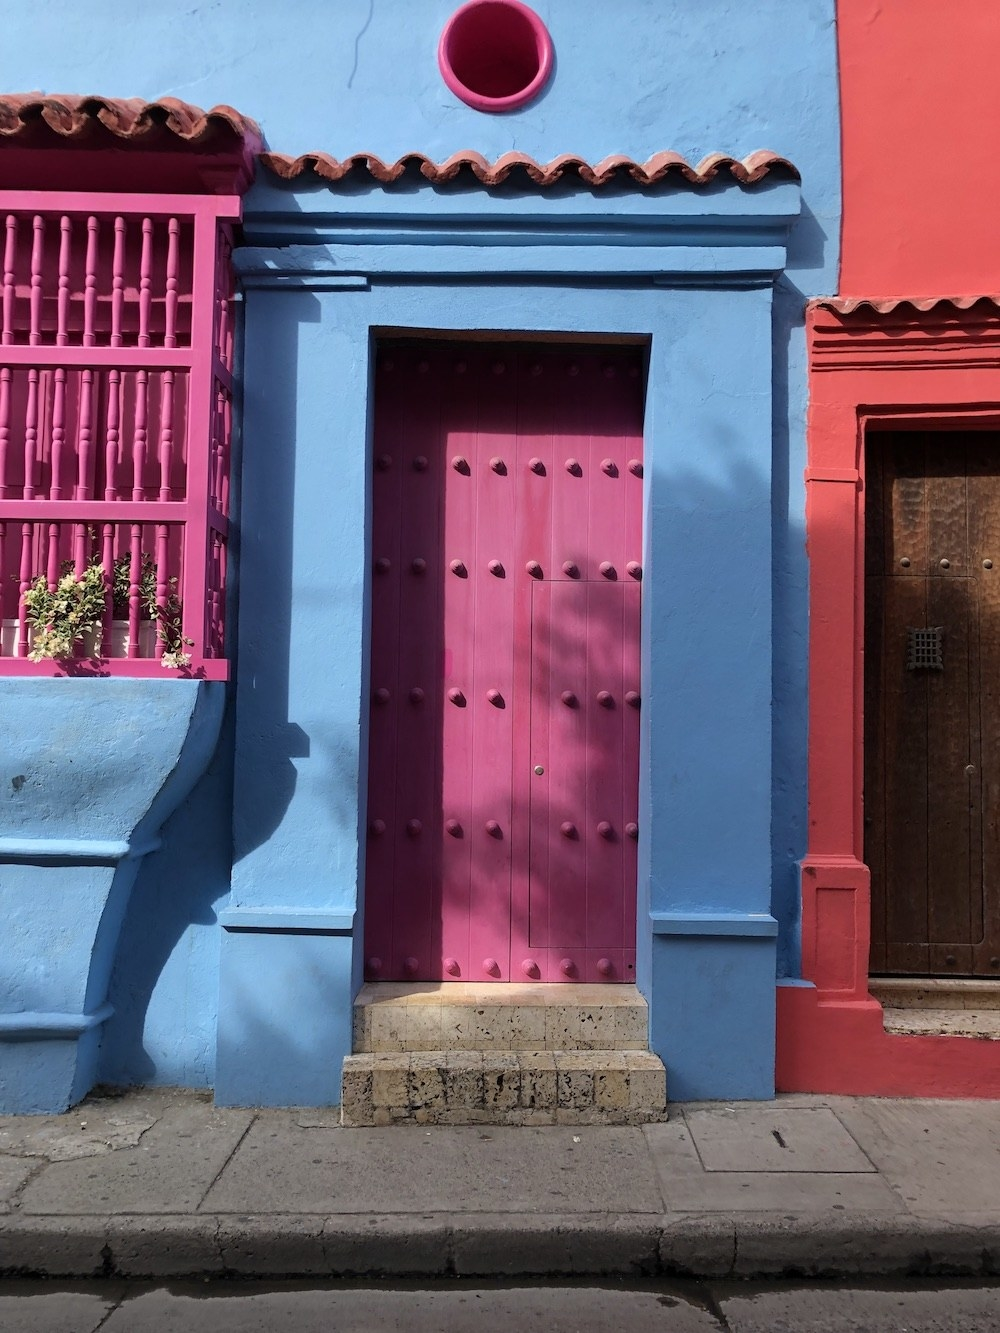 And colorful doors.